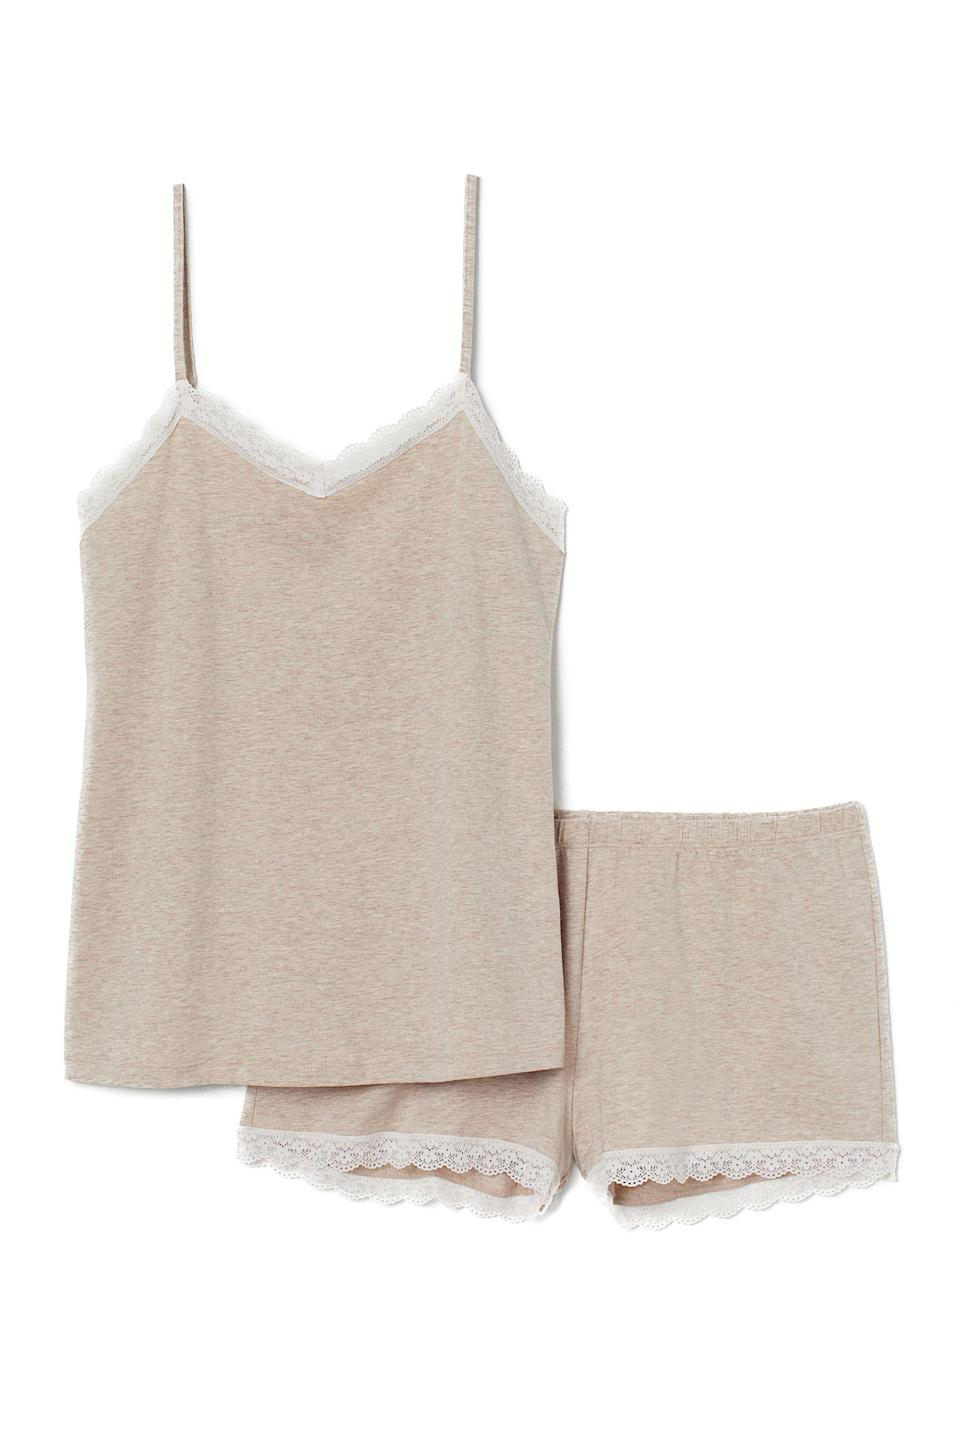 """<p><strong>H&M</strong></p><p>hm.com</p><p><strong>$17.99</strong></p><p><a href=""""https://go.redirectingat.com?id=74968X1596630&url=https%3A%2F%2Fwww2.hm.com%2Fen_us%2Fproductpage.0806241008.html&sref=https%3A%2F%2Fwww.elle.com%2Ffashion%2Fshopping%2Fg33955592%2Fgifts-for-book-lovers%2F"""" rel=""""nofollow noopener"""" target=""""_blank"""" data-ylk=""""slk:Shop Now"""" class=""""link rapid-noclick-resp"""">Shop Now</a></p><p>A neutral PJ set will make lazy Sundays so much better. </p>"""